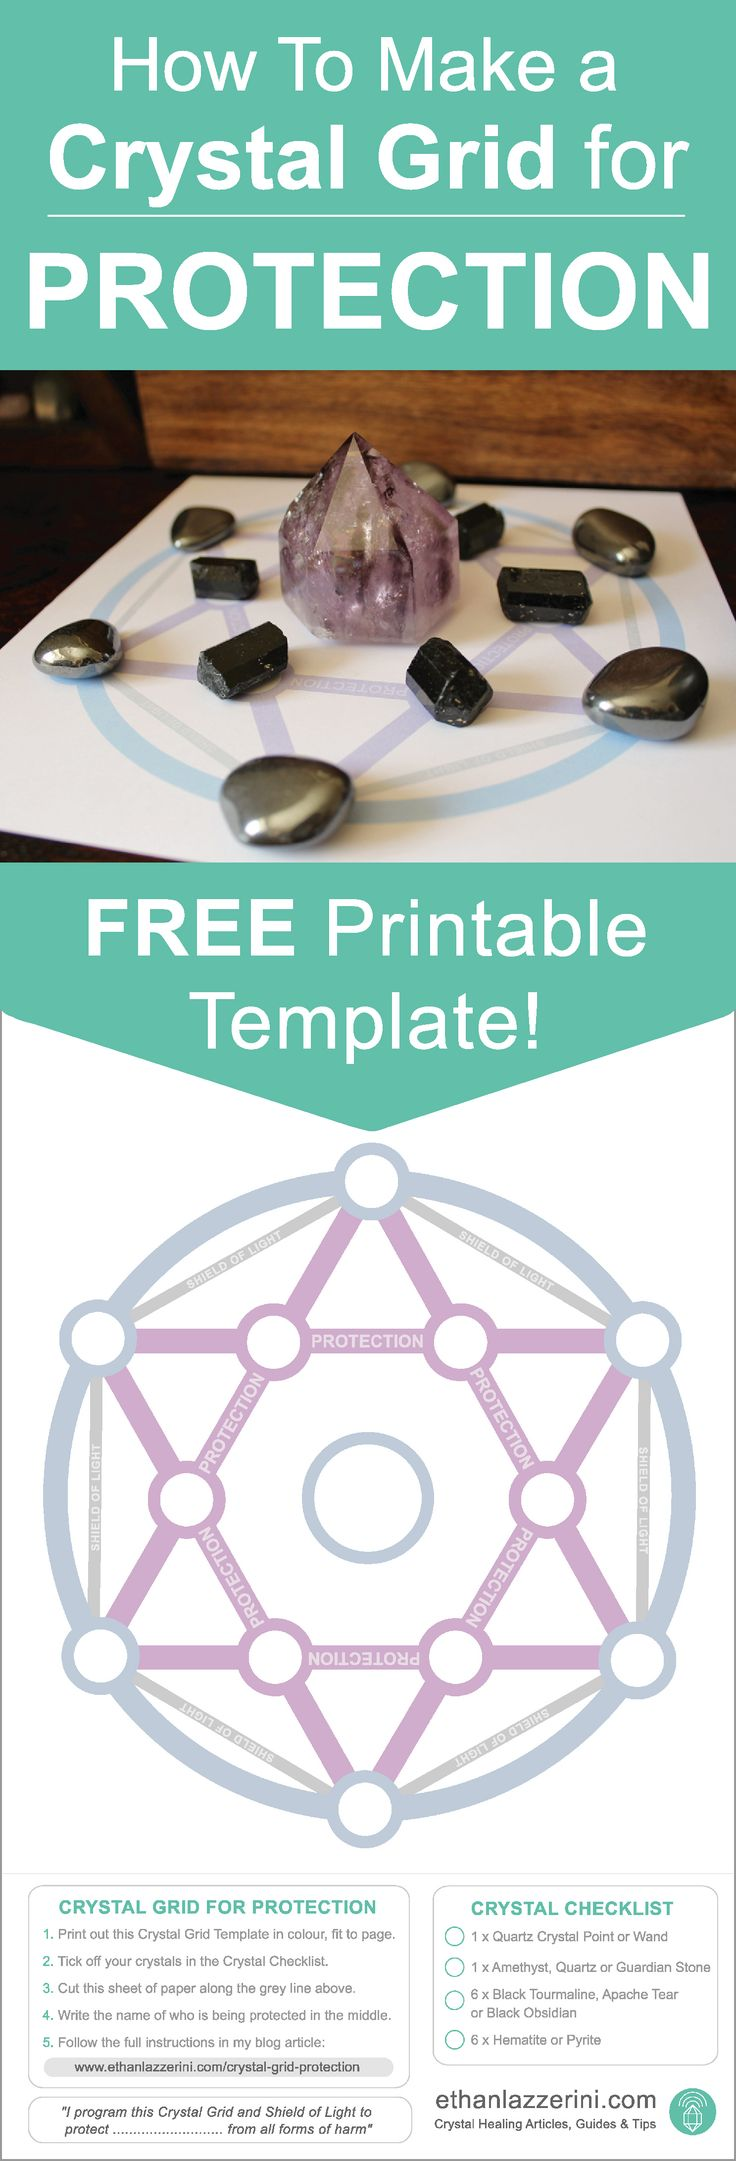 Crystal Grid Template: Free Printable with Guide for How to make a Crystal Grid for Protection.